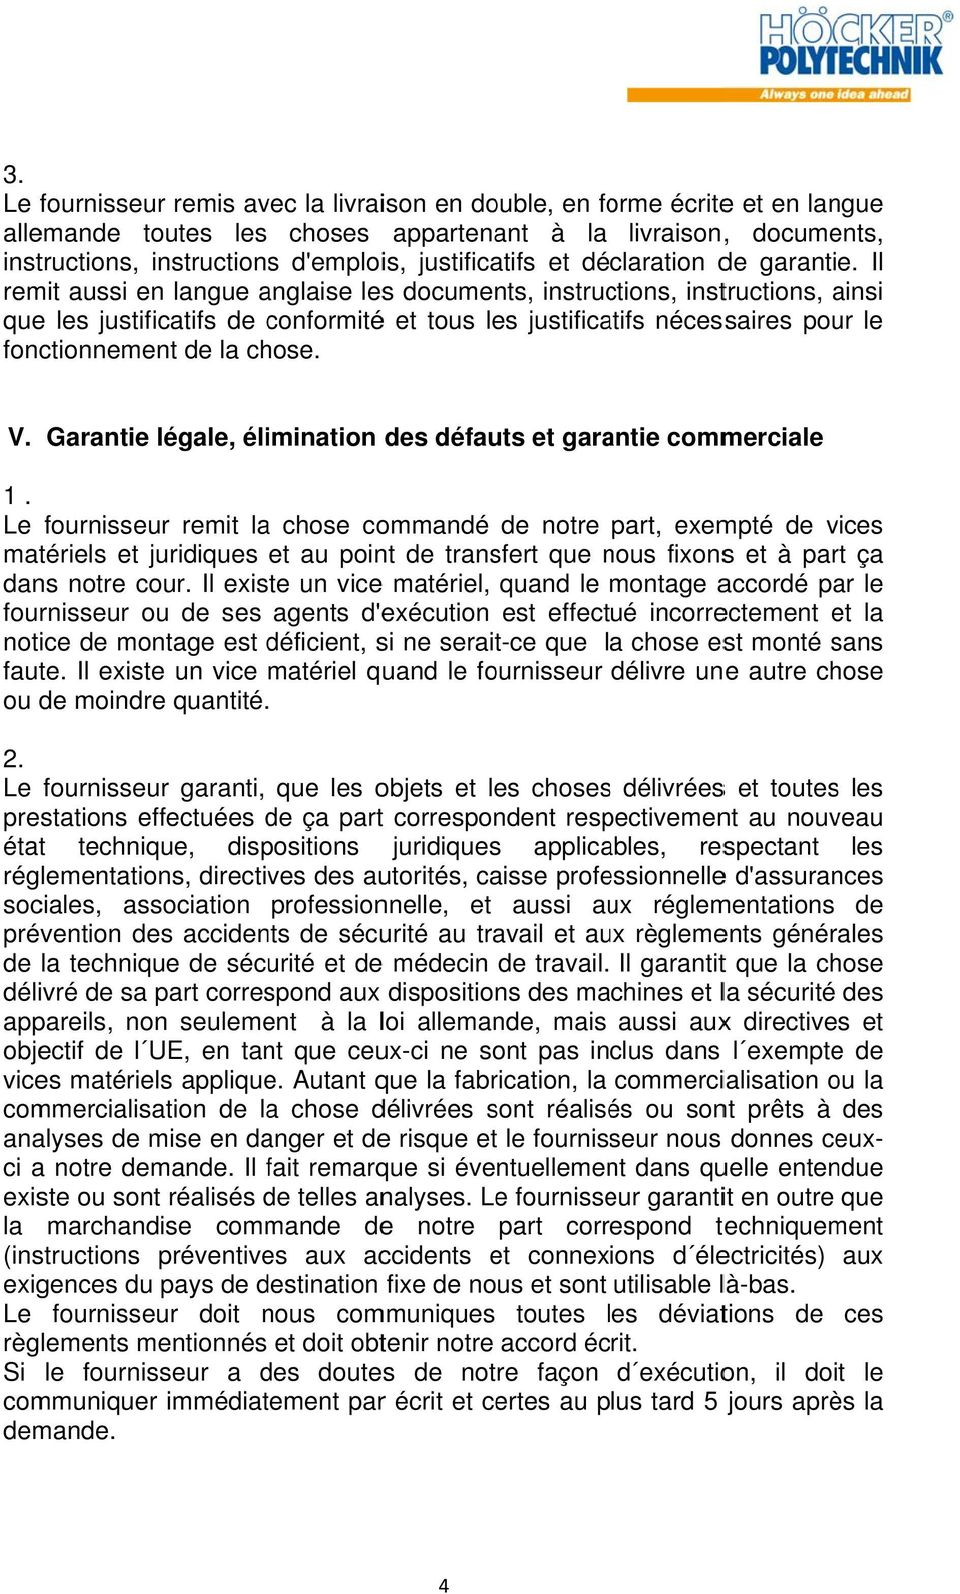 Il remit aussi en langue anglaise less documents, instructions, instructions, ainsi que les justificatifs conformité é et tous les justificatifs nécessaires pour le fonctionnement la chose. V.